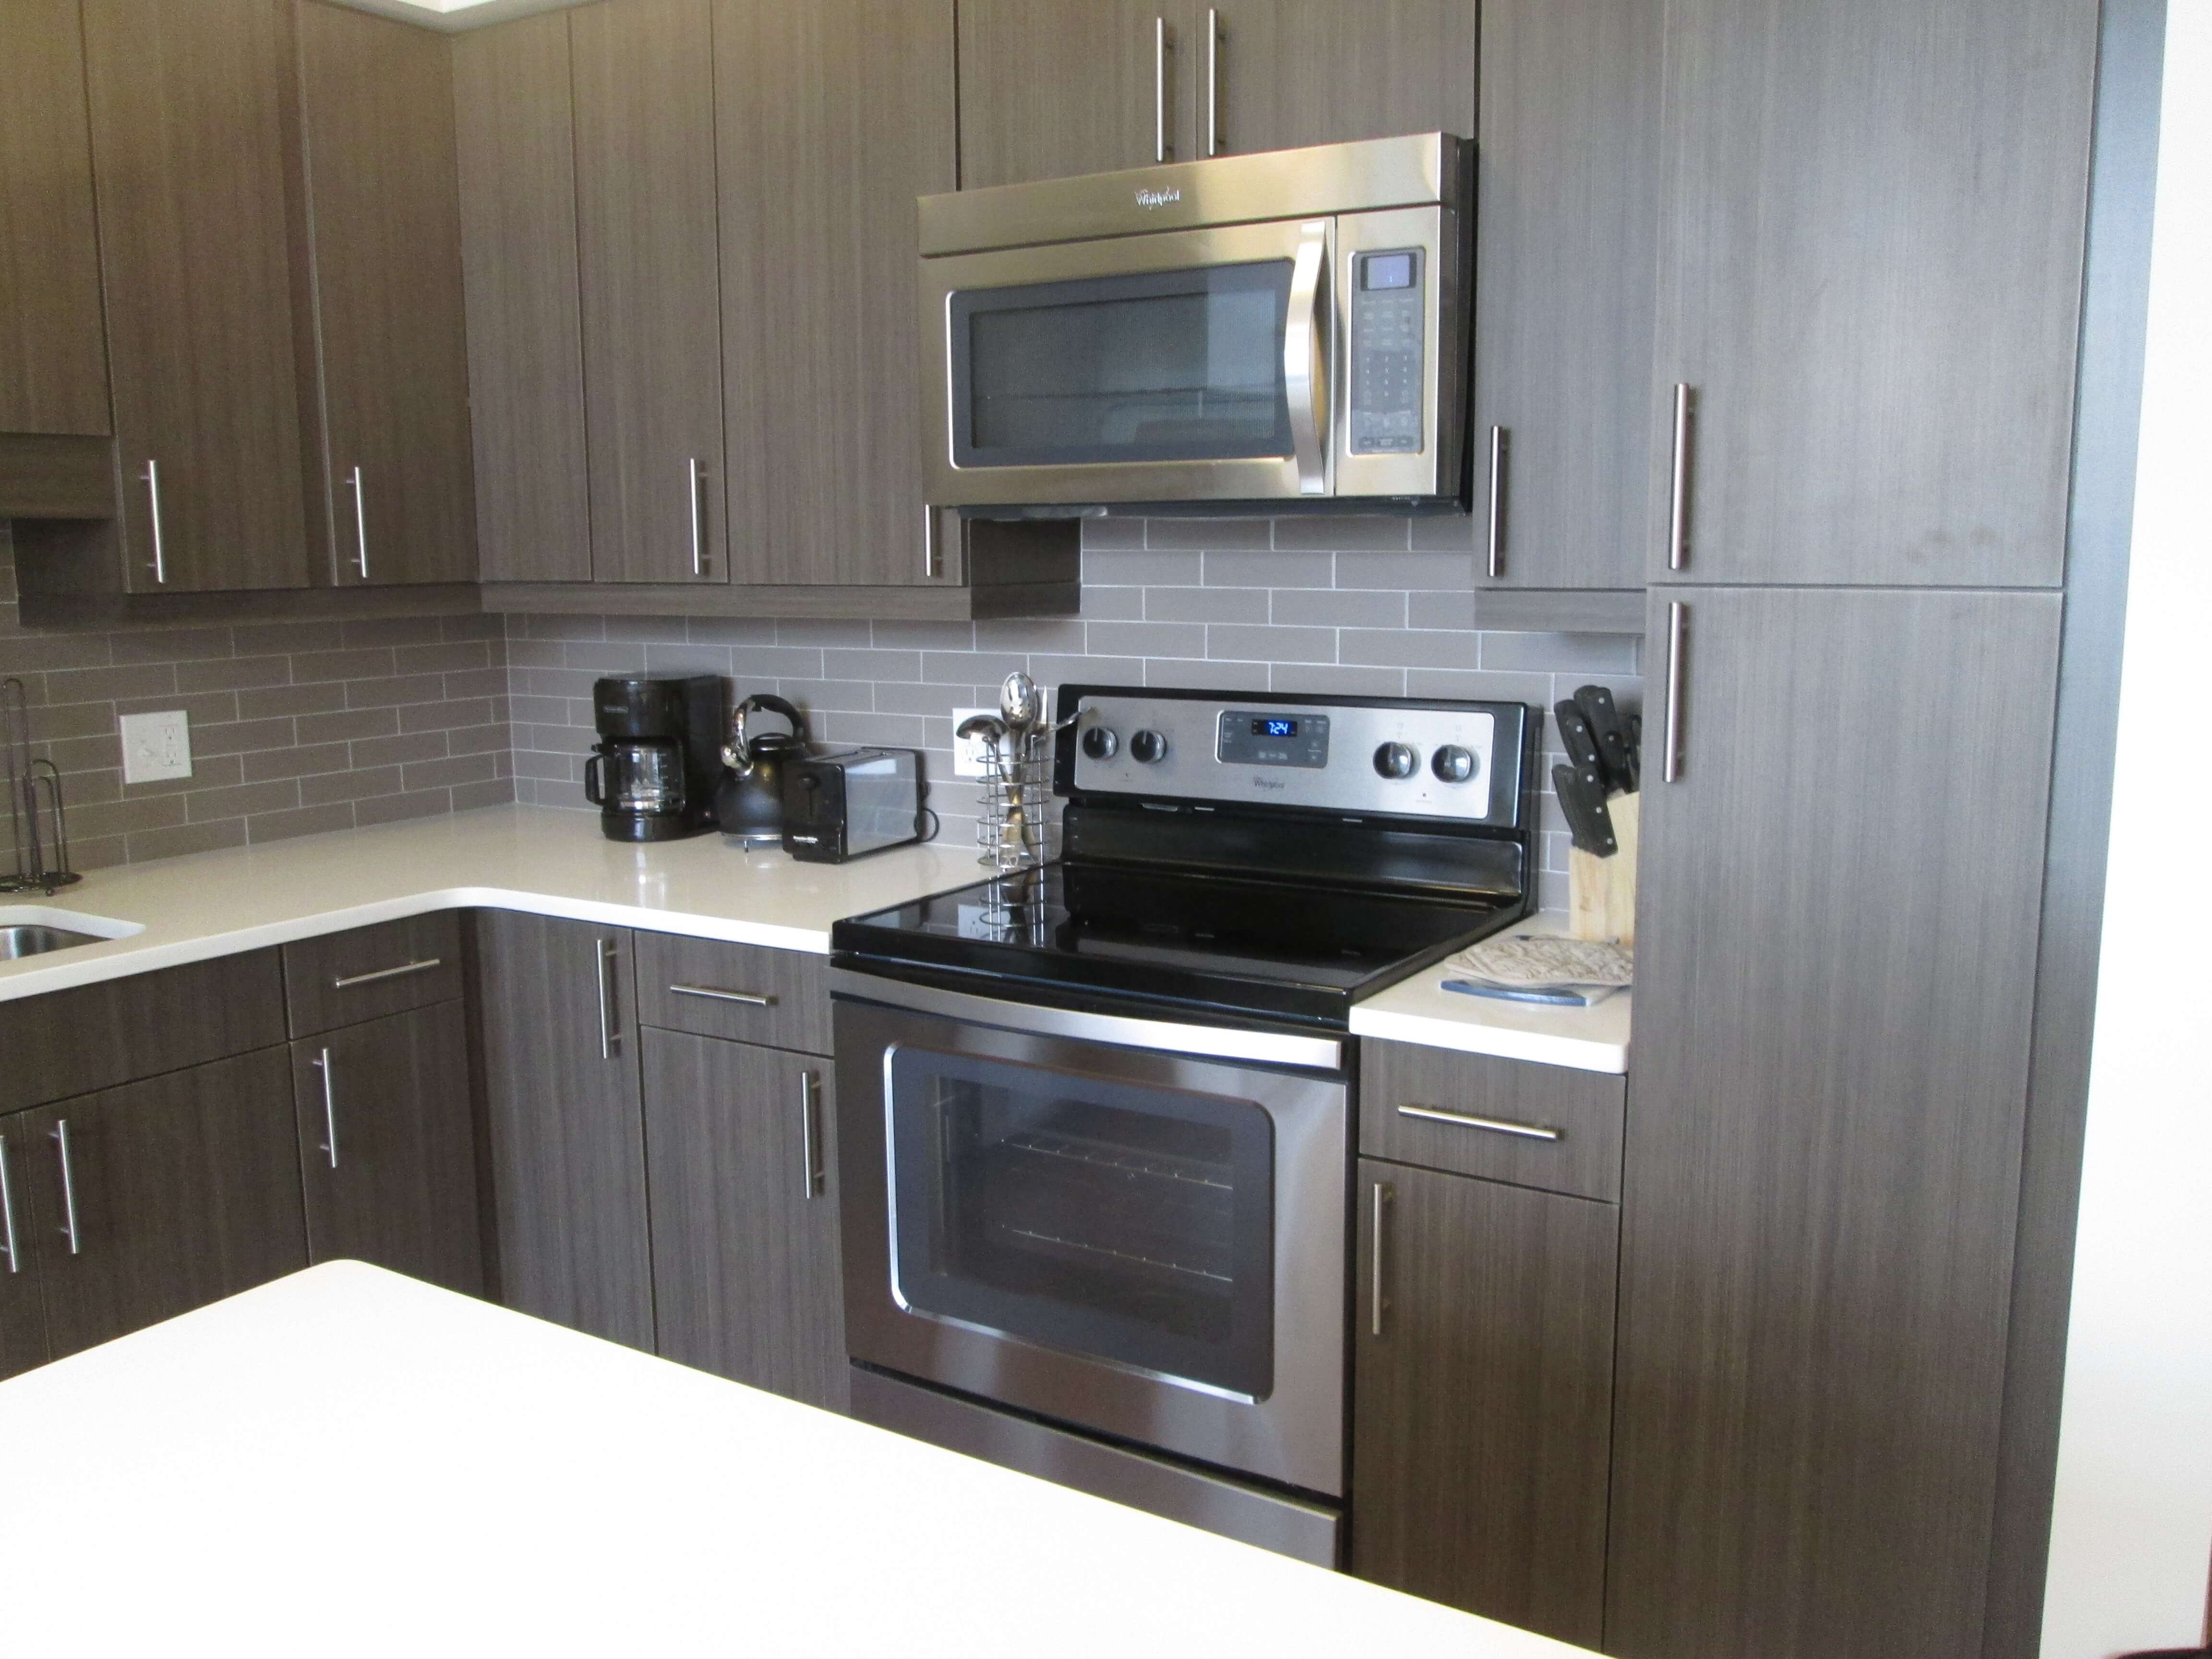 Waltham Furnished 1 Bedroom Apartment For Rent 6480 Per Month Rental Id 3172020